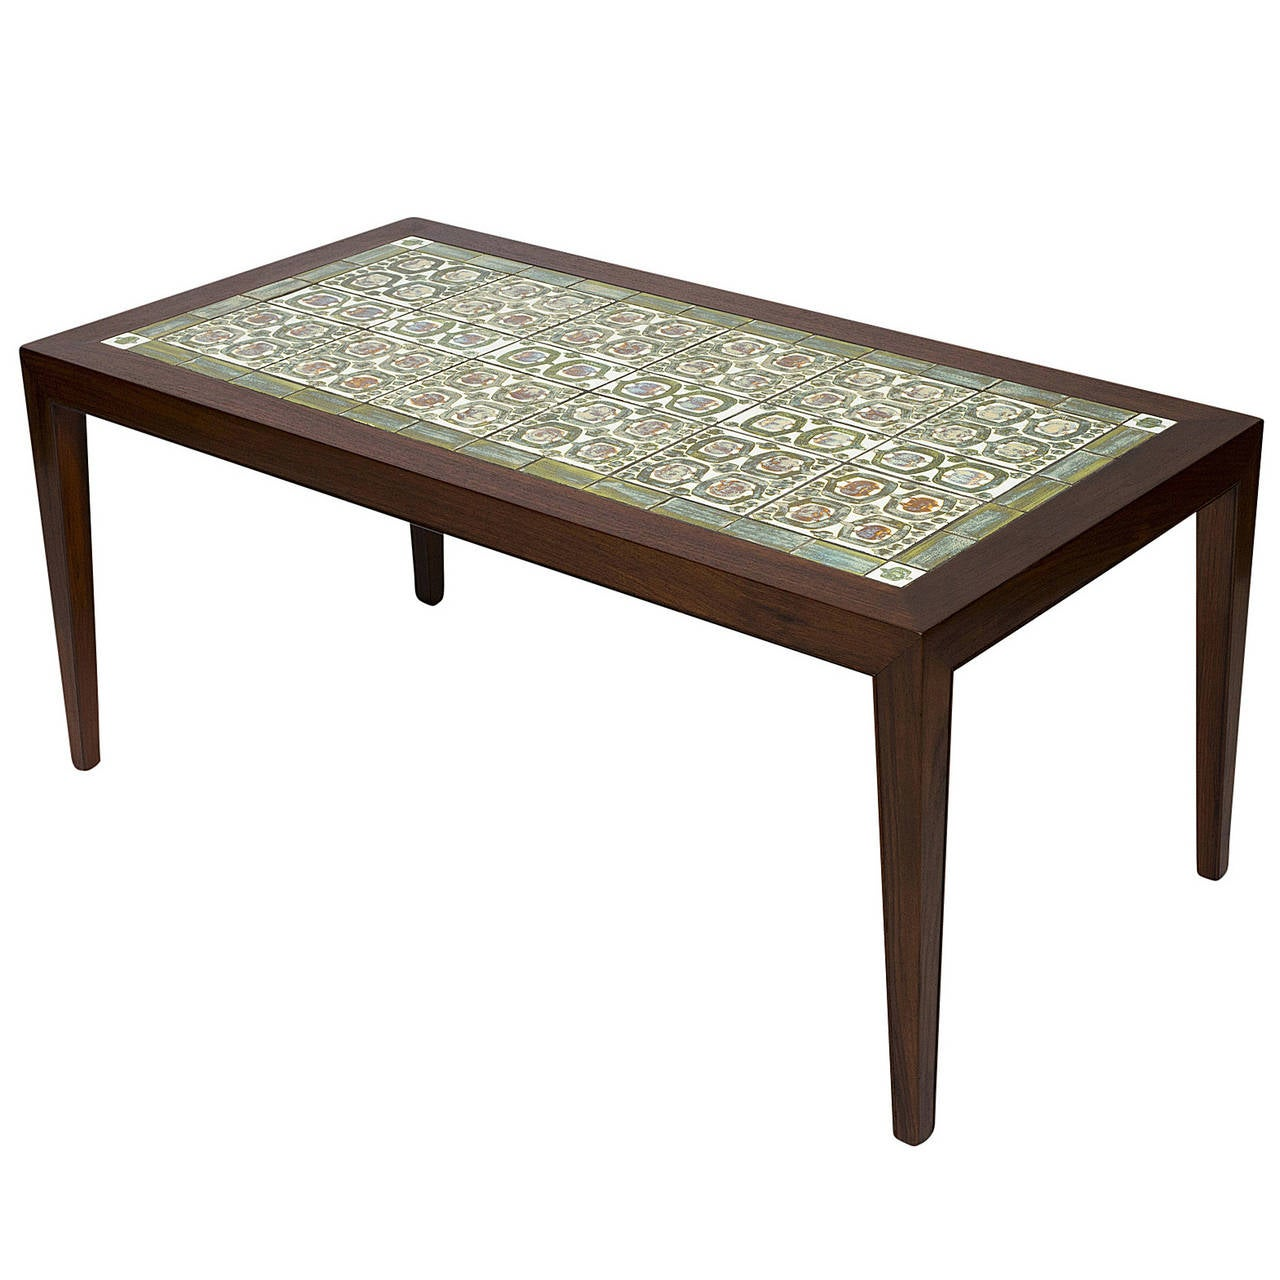 Rosewood Coffee Table With Royal Copenhagen Tiles 1